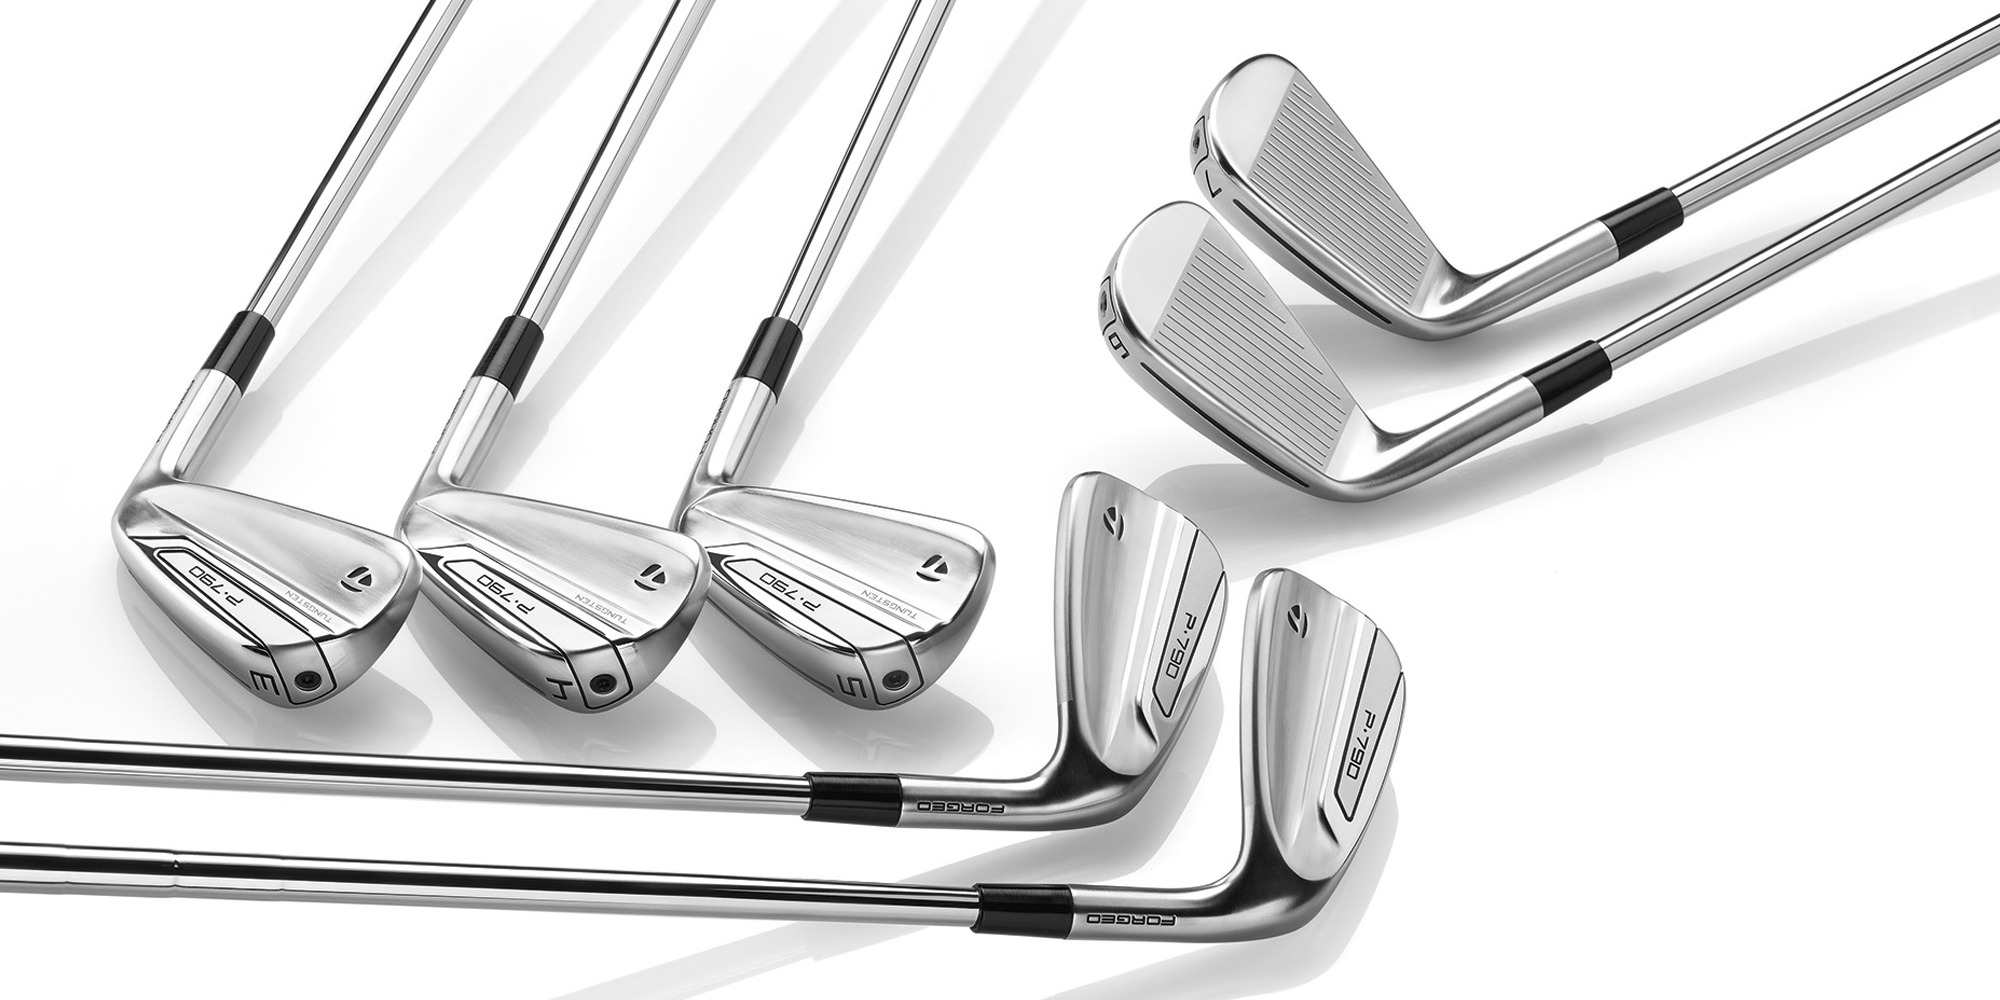 taylormade p790 specs